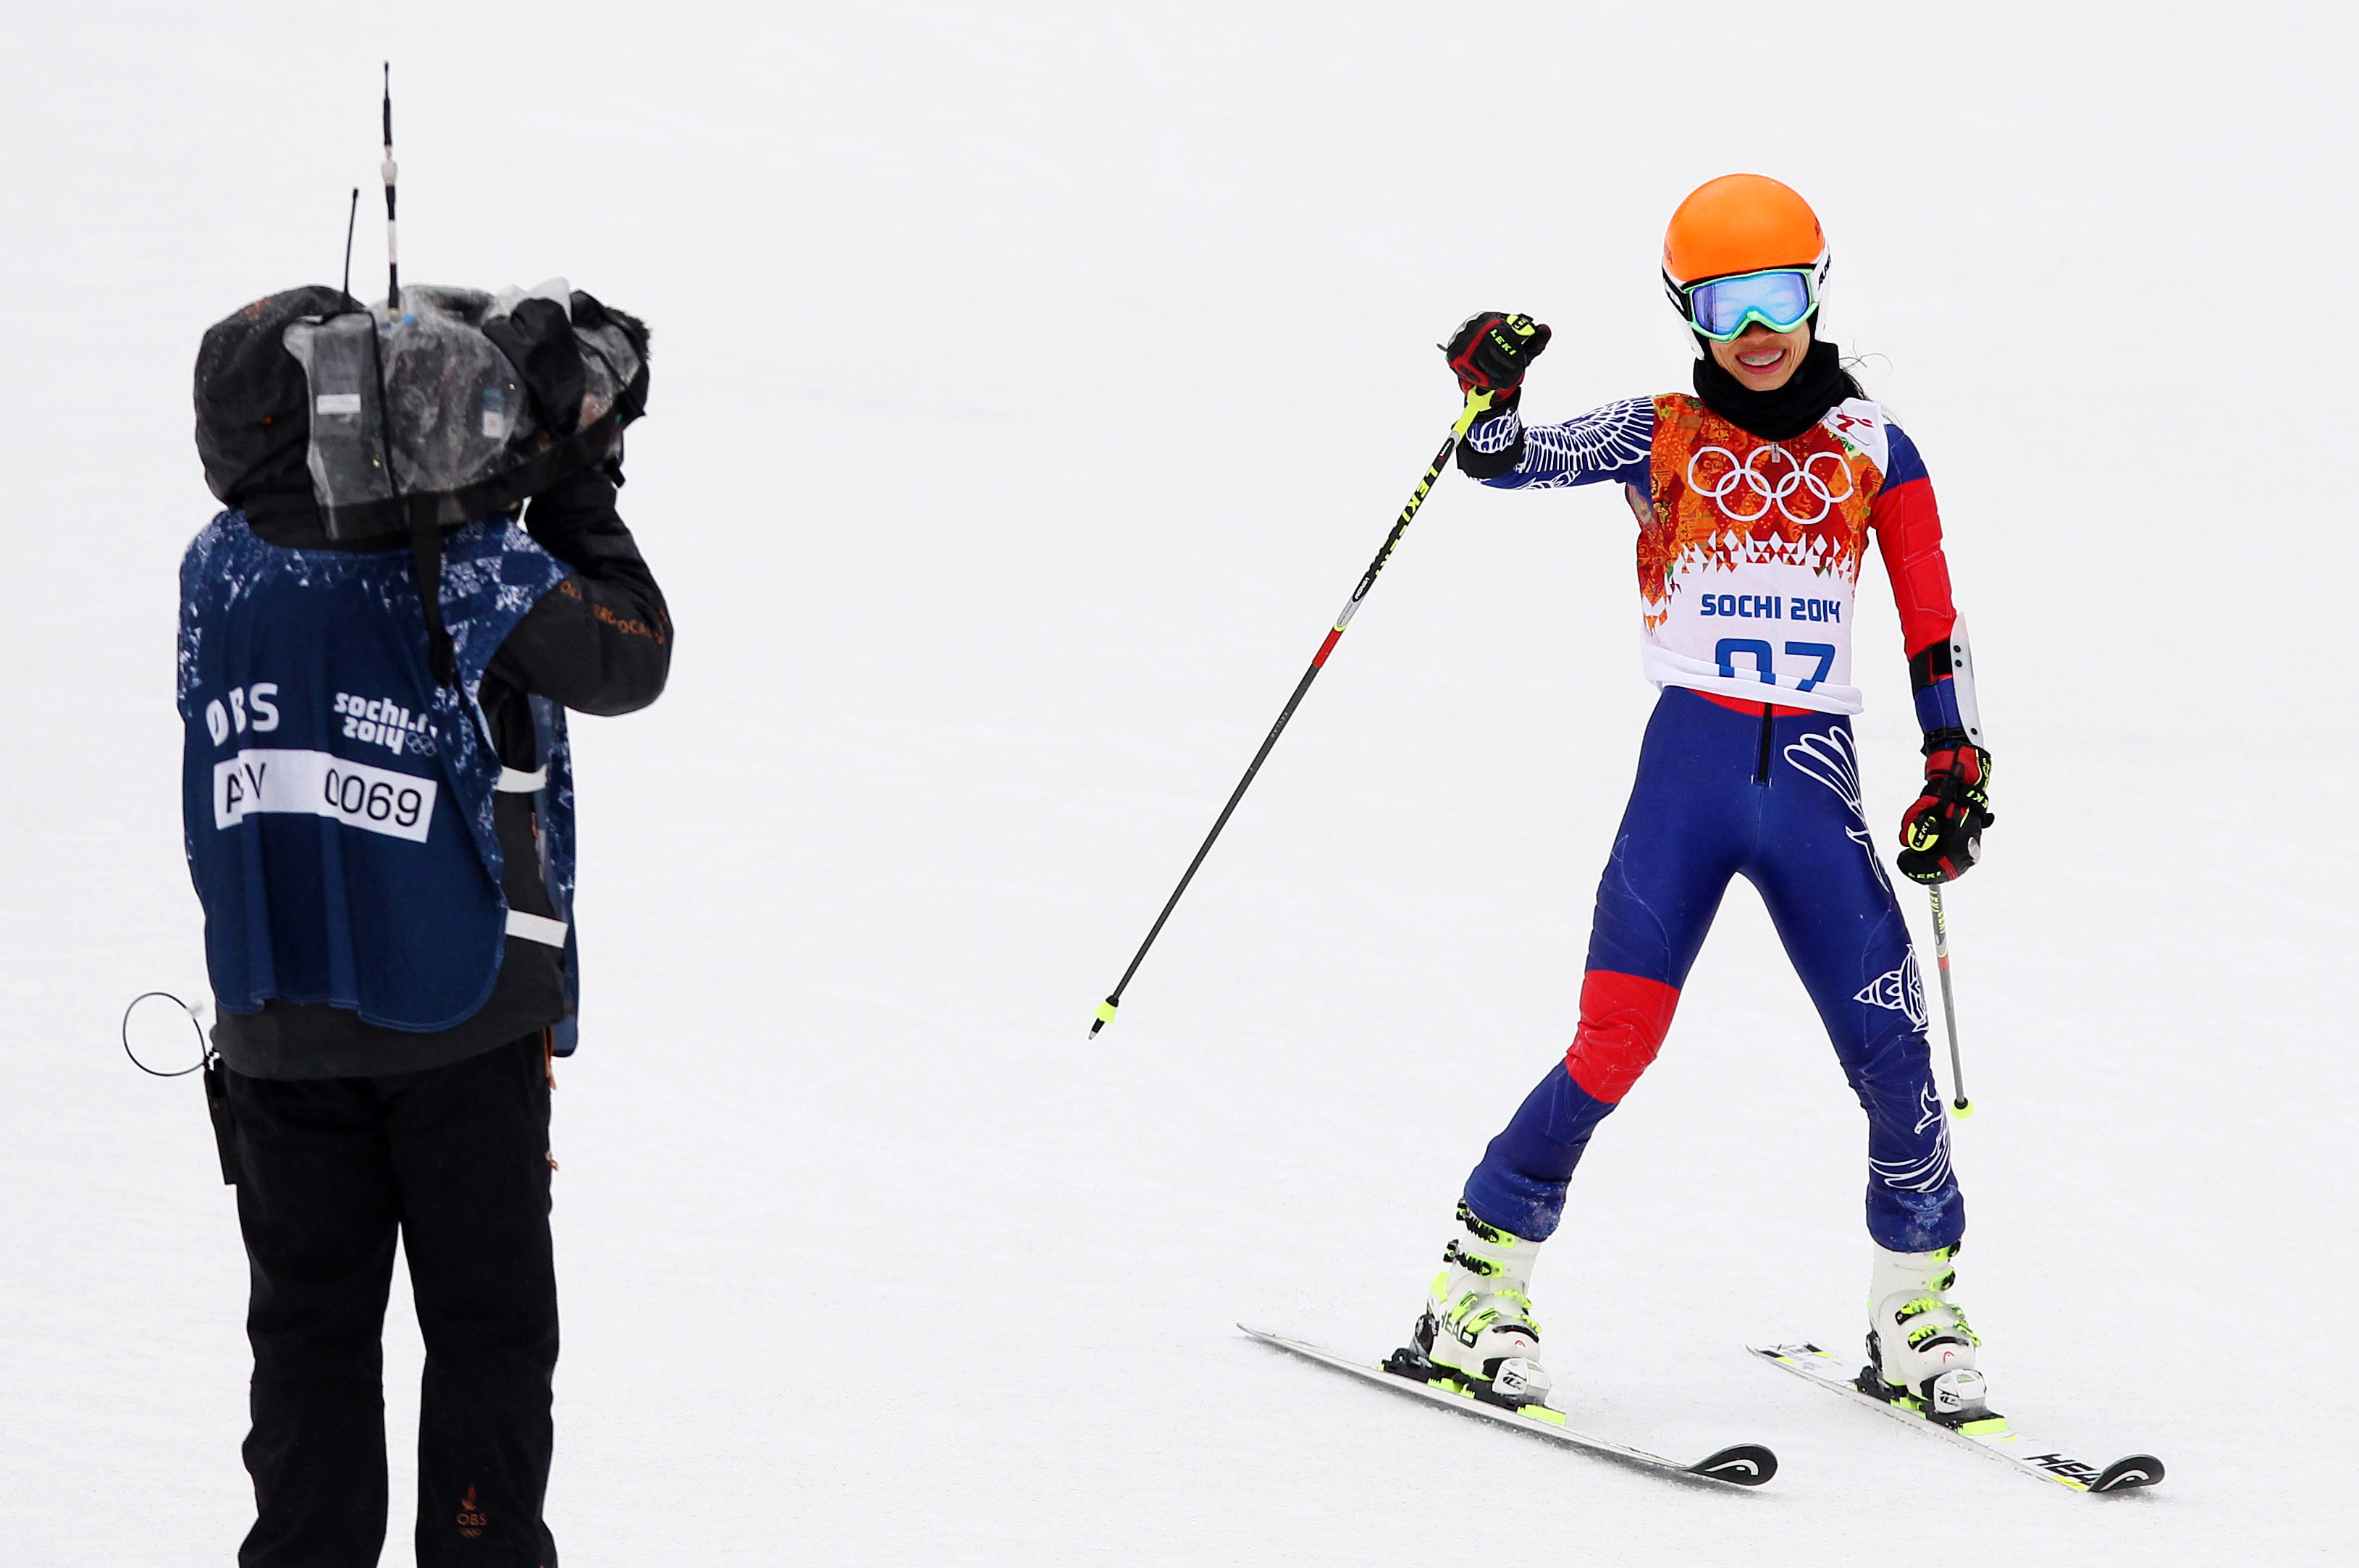 Sochi participant Vanessa-Mae has been banned from ski racing for four years as a result of a fixed Olympic qualification process. GEPA